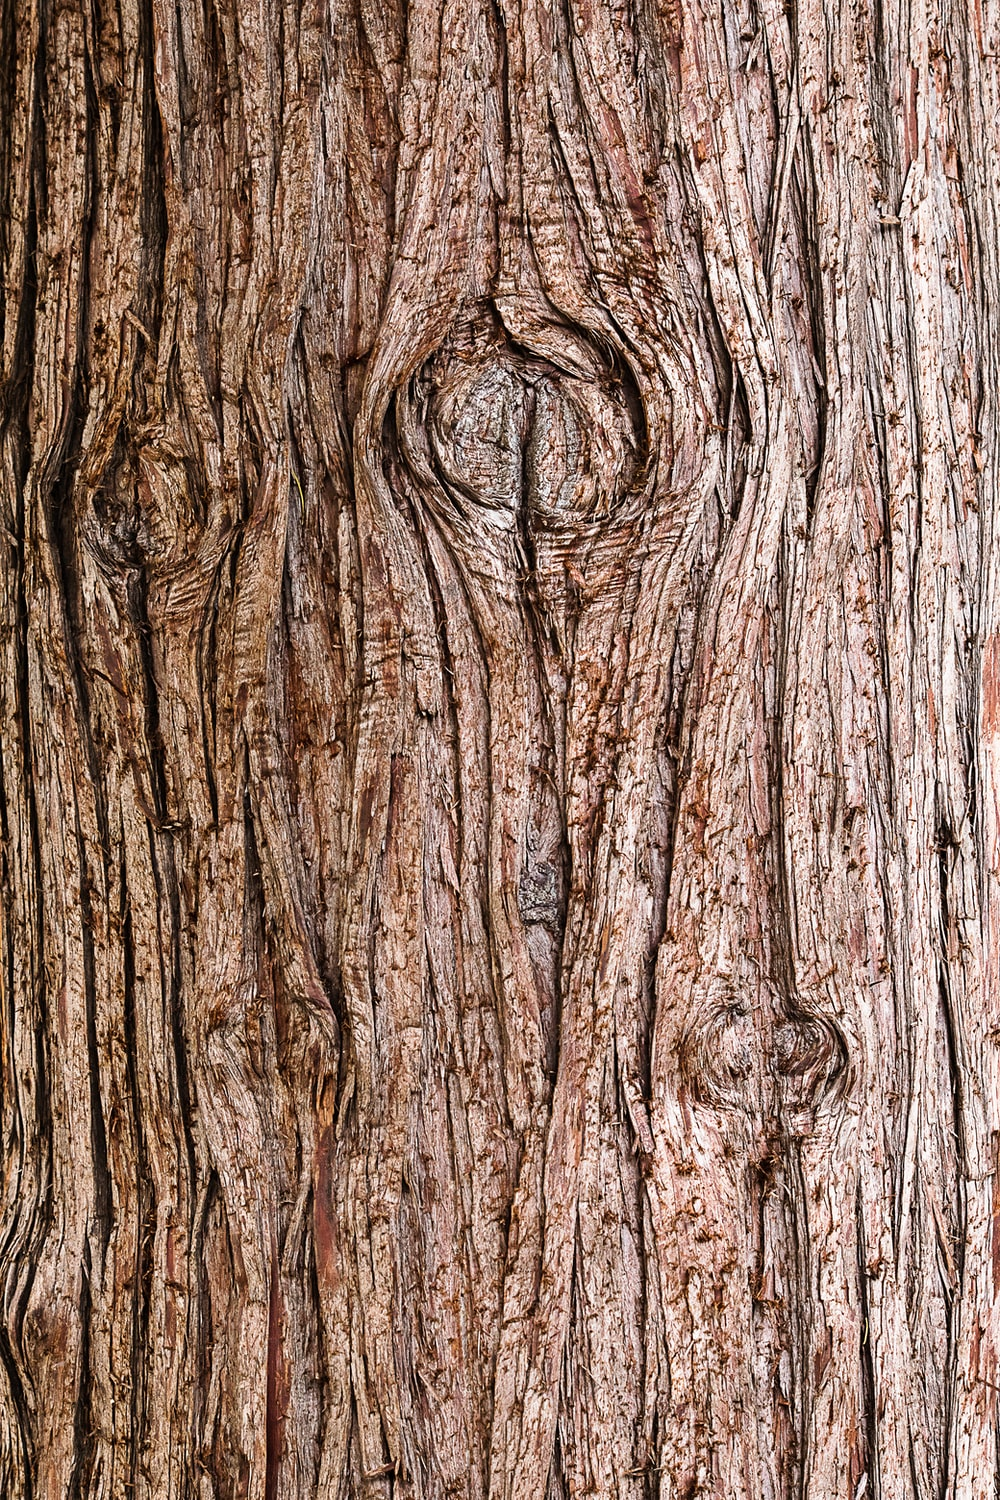 brown tree trunk in close up photography